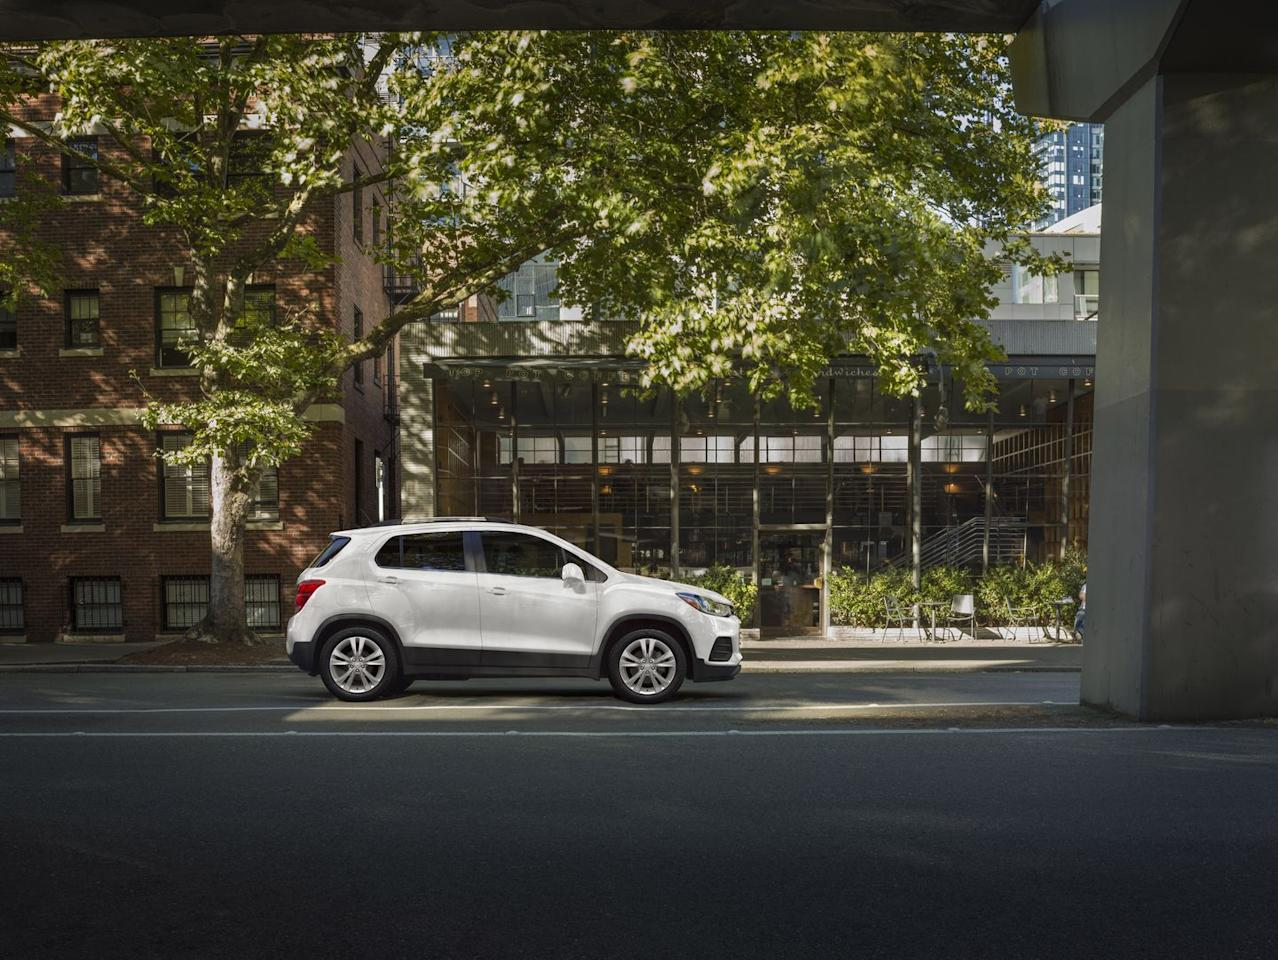 "<p>Despite a cool name, <a href=""https://www.caranddriver.com/chevrolet/trax"" target=""_blank"">the Trax</a> is an unadventurous choice in a segment with more exciting, fun-to-drive choices. (The mechanically similar Buick Encore, for example, is a more distinguished offering.) The Chevy offers a roomy cabin and is powered by a 138-hp 1.4-liter turbo four with a six-speed automatic; take your pick of either front- or all-wheel drive. Steering feedback is okay, and the ride is smooth, but the Trax is tuned more for comfort than sport. Inside, there's lots of tech, with 4G LTE, a built-in Wi-Fi hotspot, and a 7.0-inch touchscreen featuring Apple CarPlay and Android Auto compatibility.</p>"